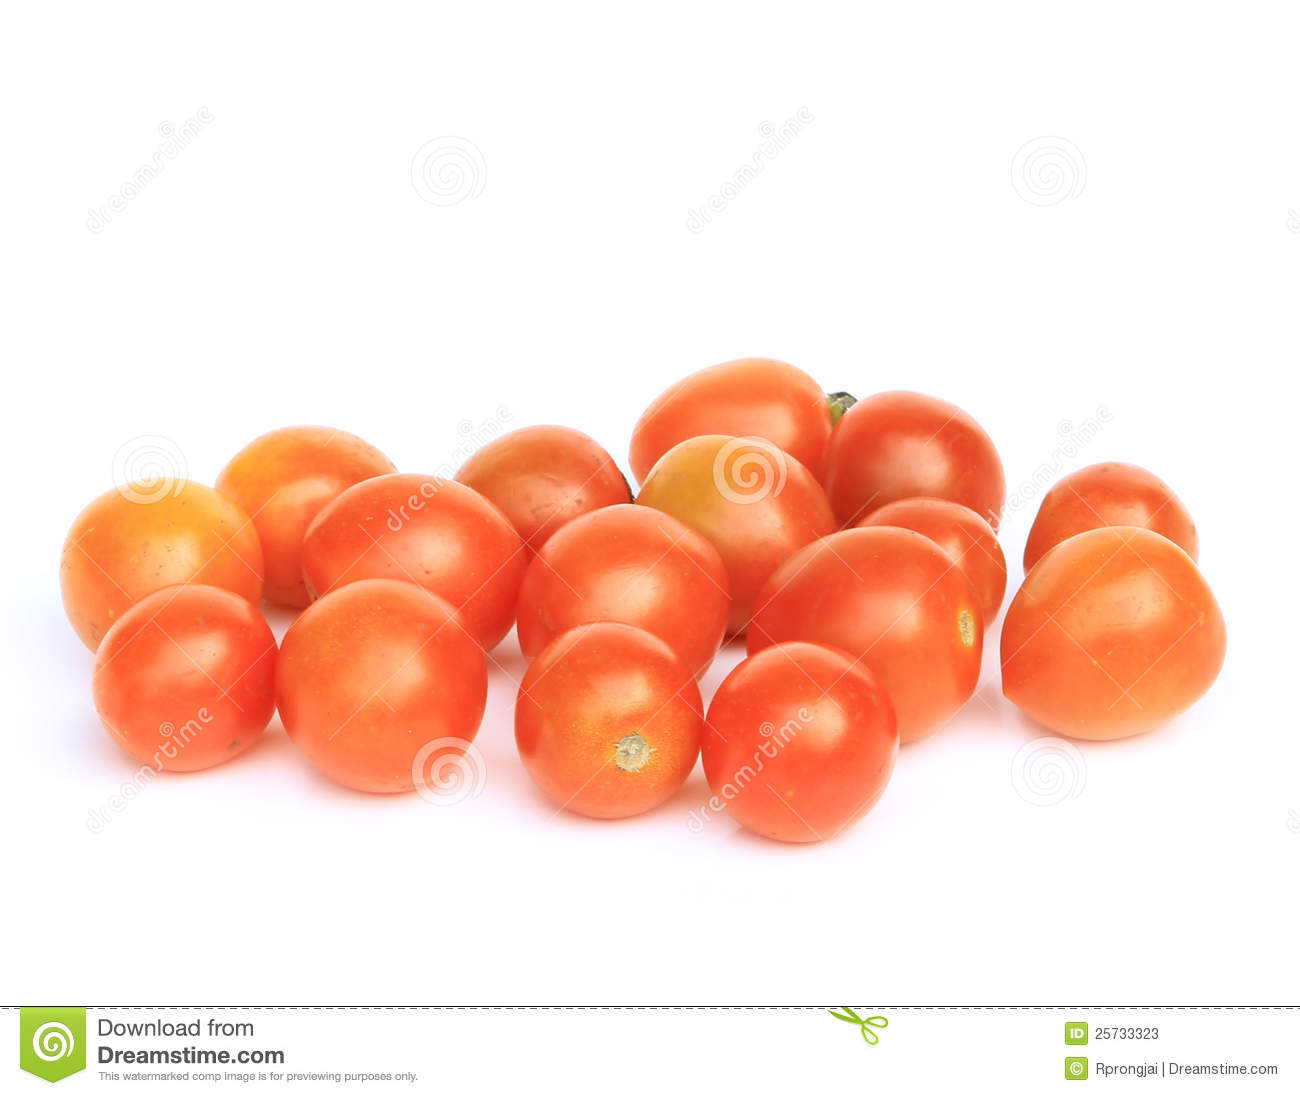 Tomatoes isolate